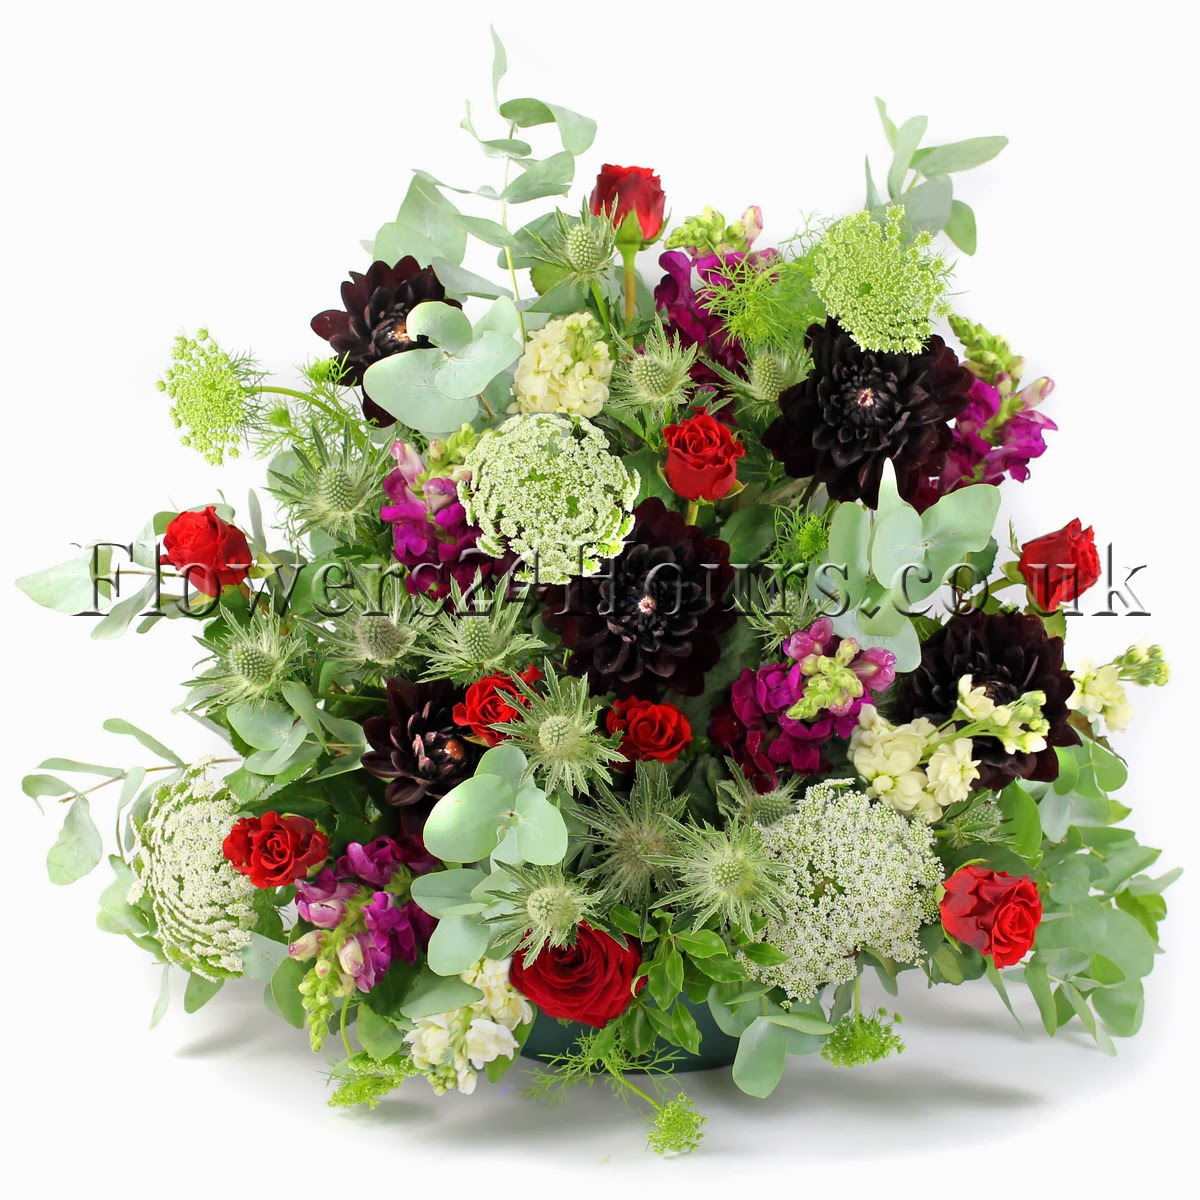 Mother s day flowers delivery london mother s day gifts uk for Landscape arrangement